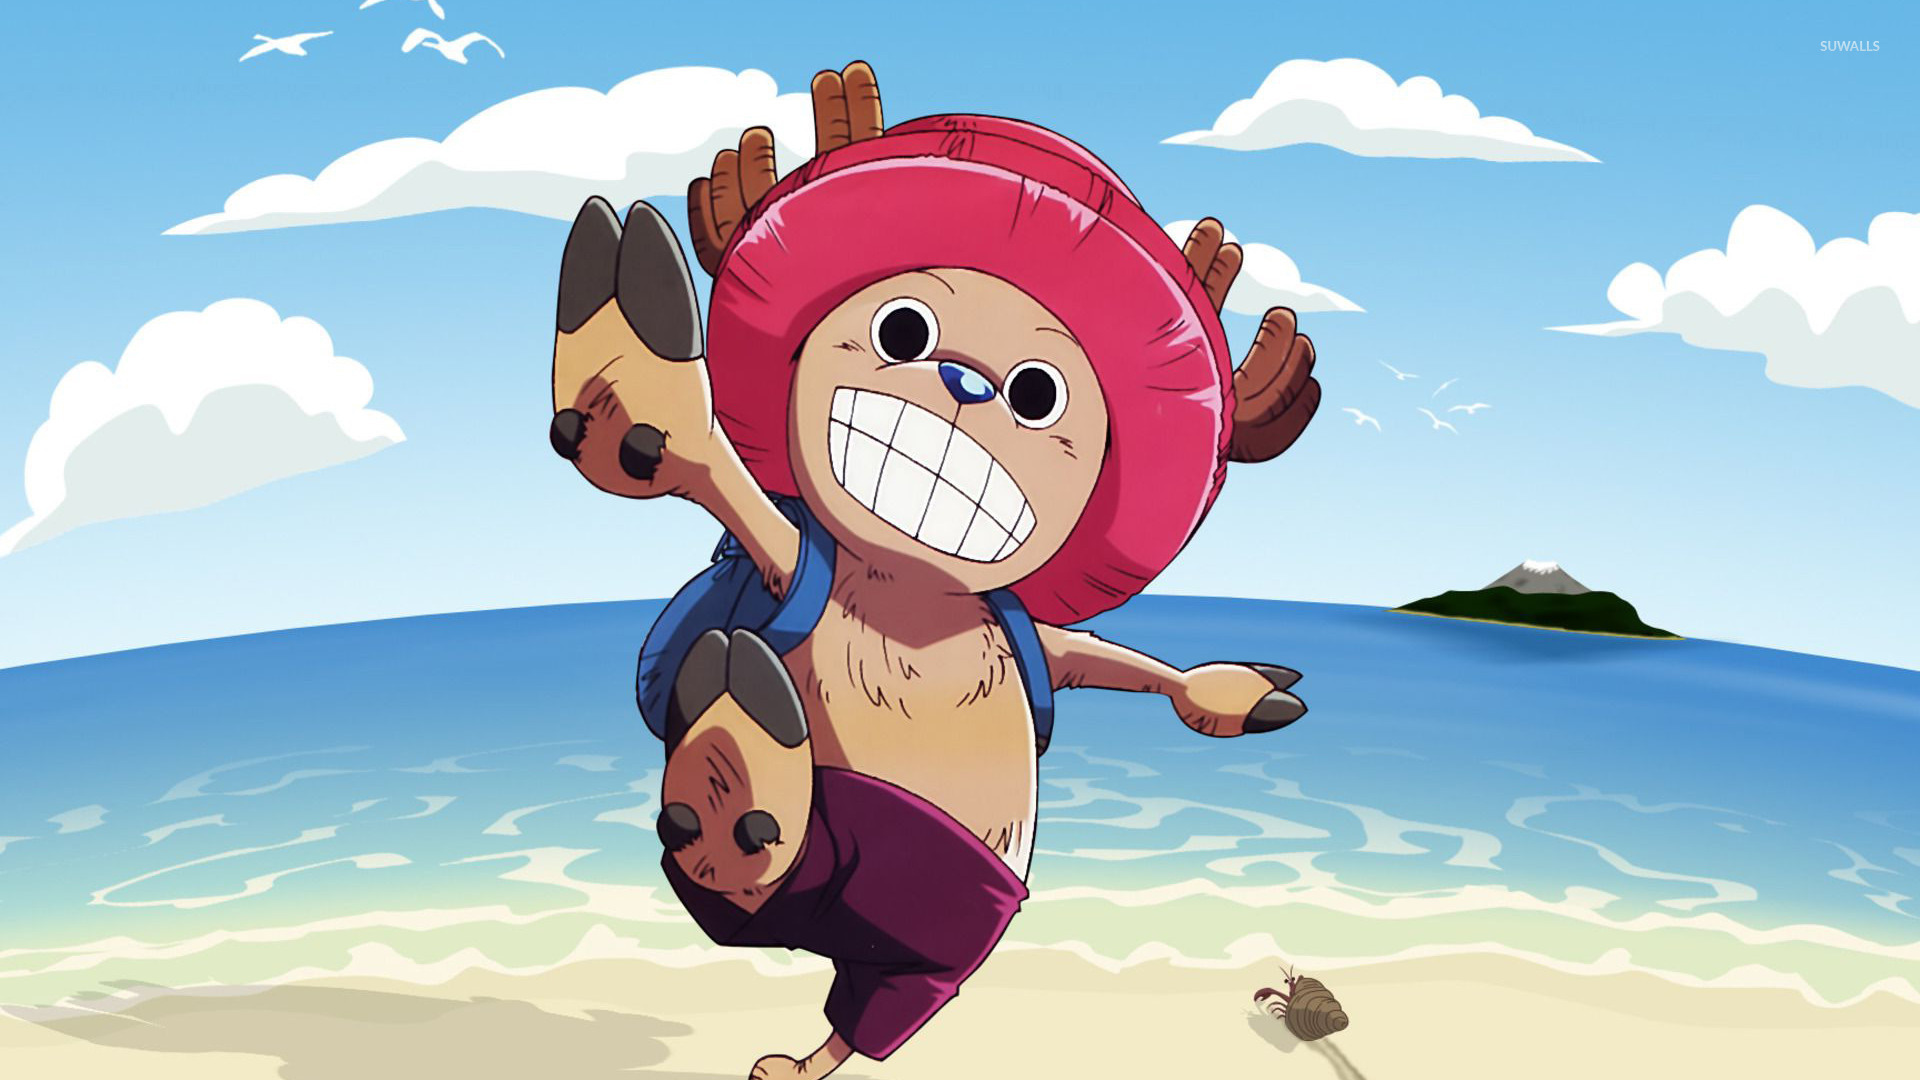 Naruto Quotes Wallpaper Hd Tony Tony Chopper One Piece Wallpaper Anime Wallpapers